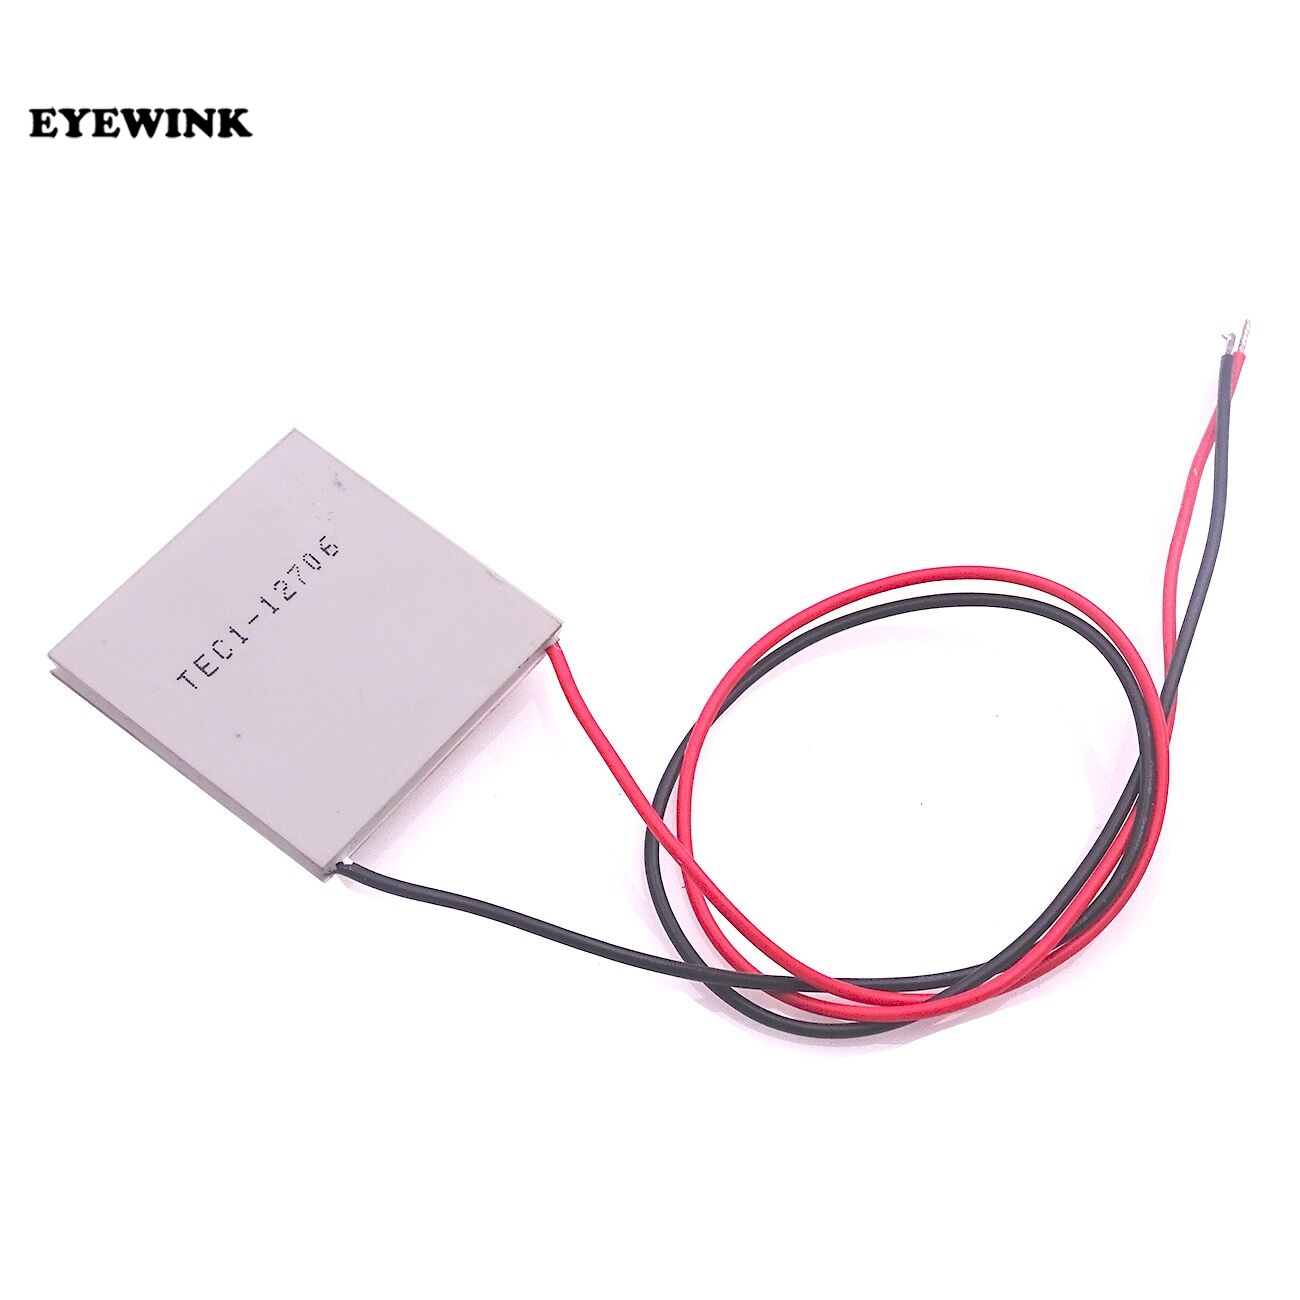 EYEWINK 60PCS TEC1 12705 TEC1 12706 12706 TEC Thermoelectric Cooler Peltier 12V New of semiconductor refrigeration